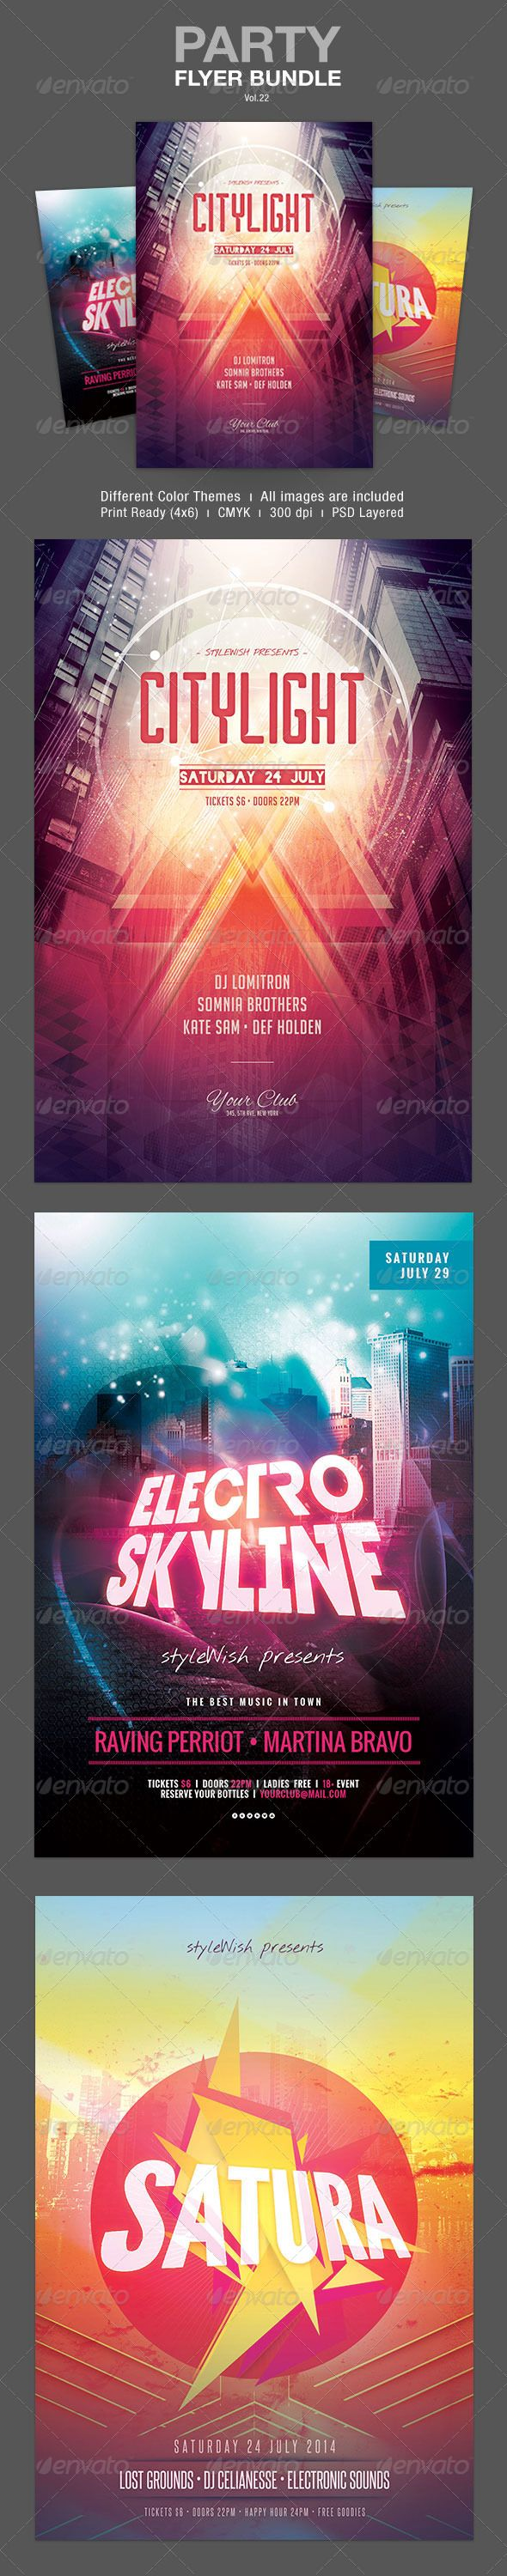 Party Flyer Bundle Template PSD | Buy and Download: http://graphicriver.net/item/party-flyer-bundle-vol22/8020075?WT.ac=category_thumb&WT.z_author=styleWish&ref=ksioks